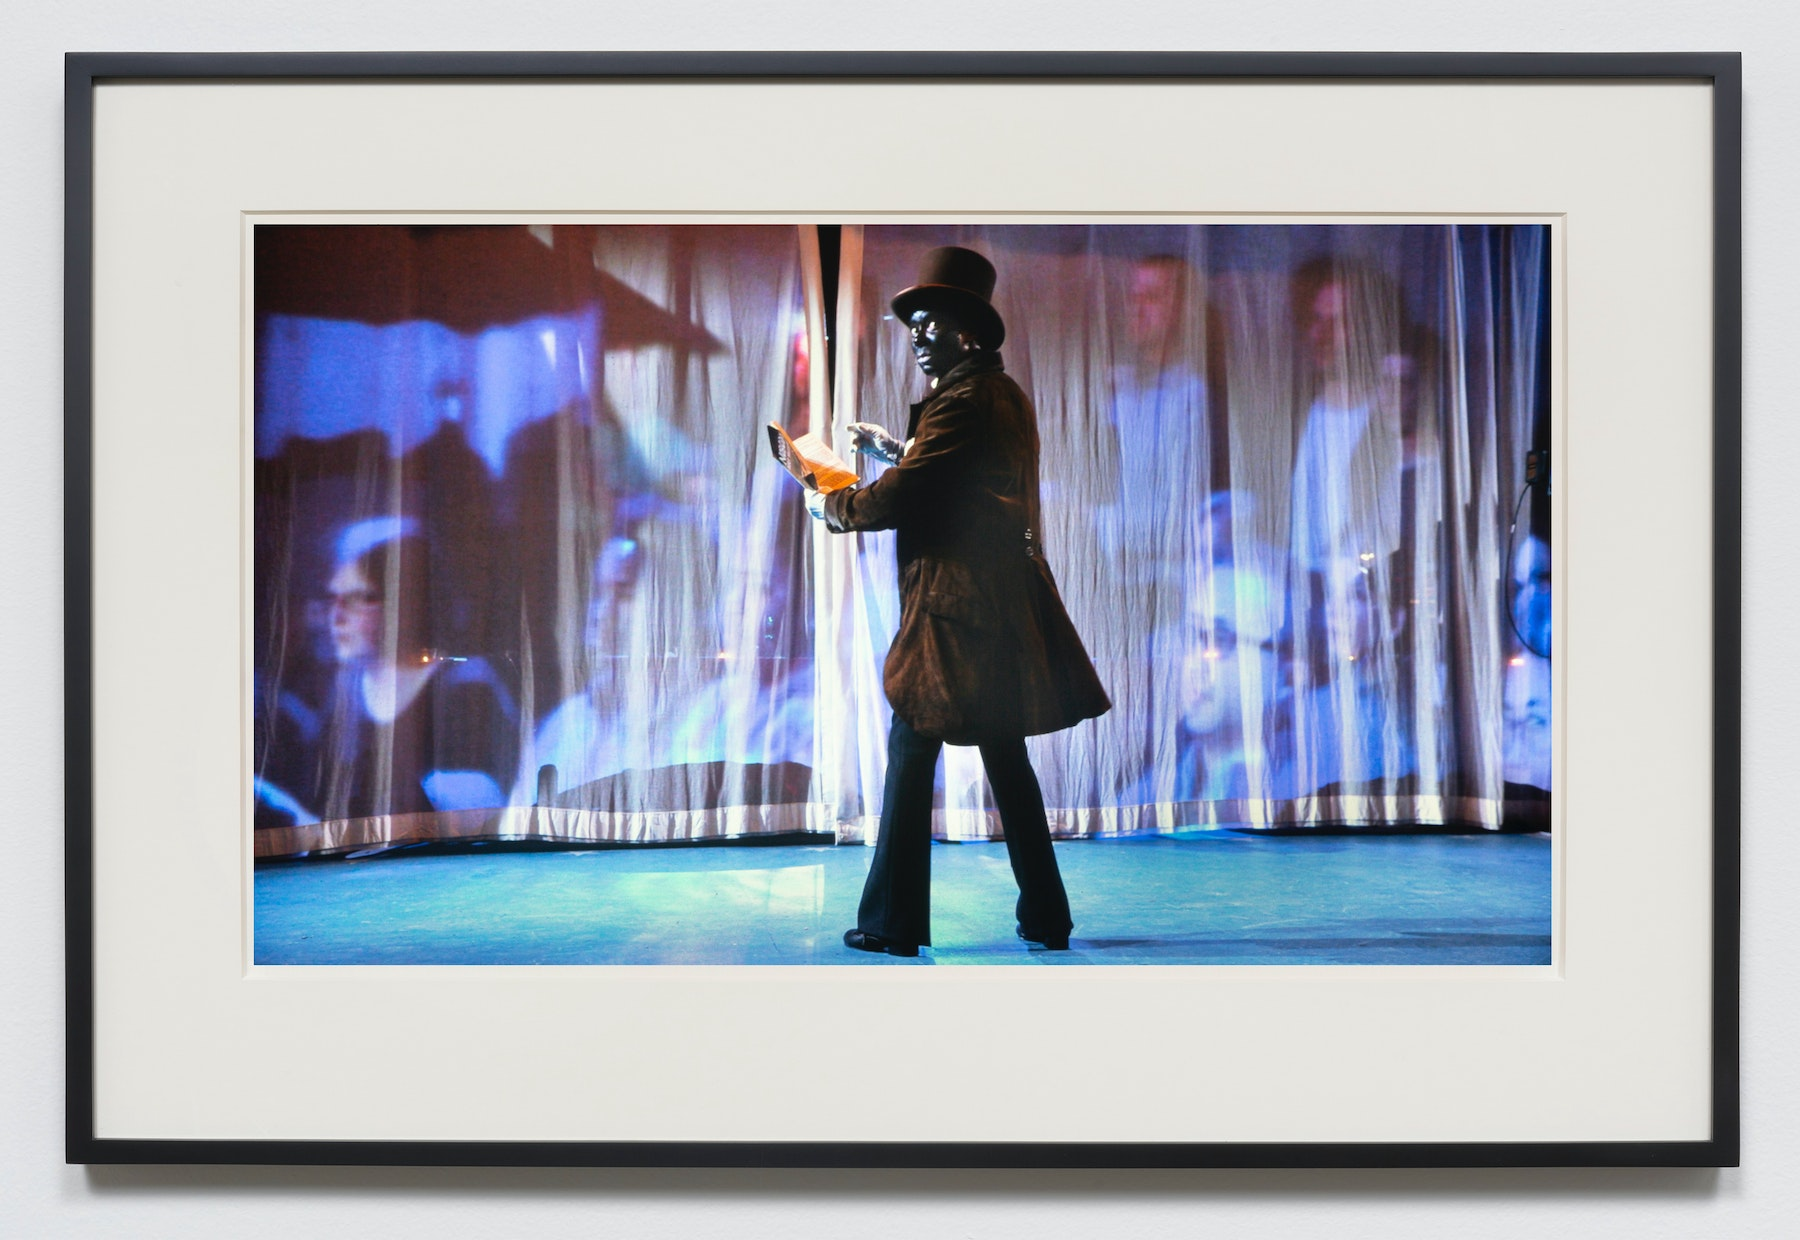 """Edgar Arceneaux """"Lemme See Here,"""" 2015-2020 Photographic print 20 x 36"""" [HxW] (50.8 x 91.44 cm) unframed, 23.5 x 39.5 x 2"""" [HxWxD] (59.69 x 100.33 x 5.08 cm) framed Edition 1 of 5, 2 AP Inventory #ARC630.01 Courtesy of the artist and Vielmetter Los Angeles"""